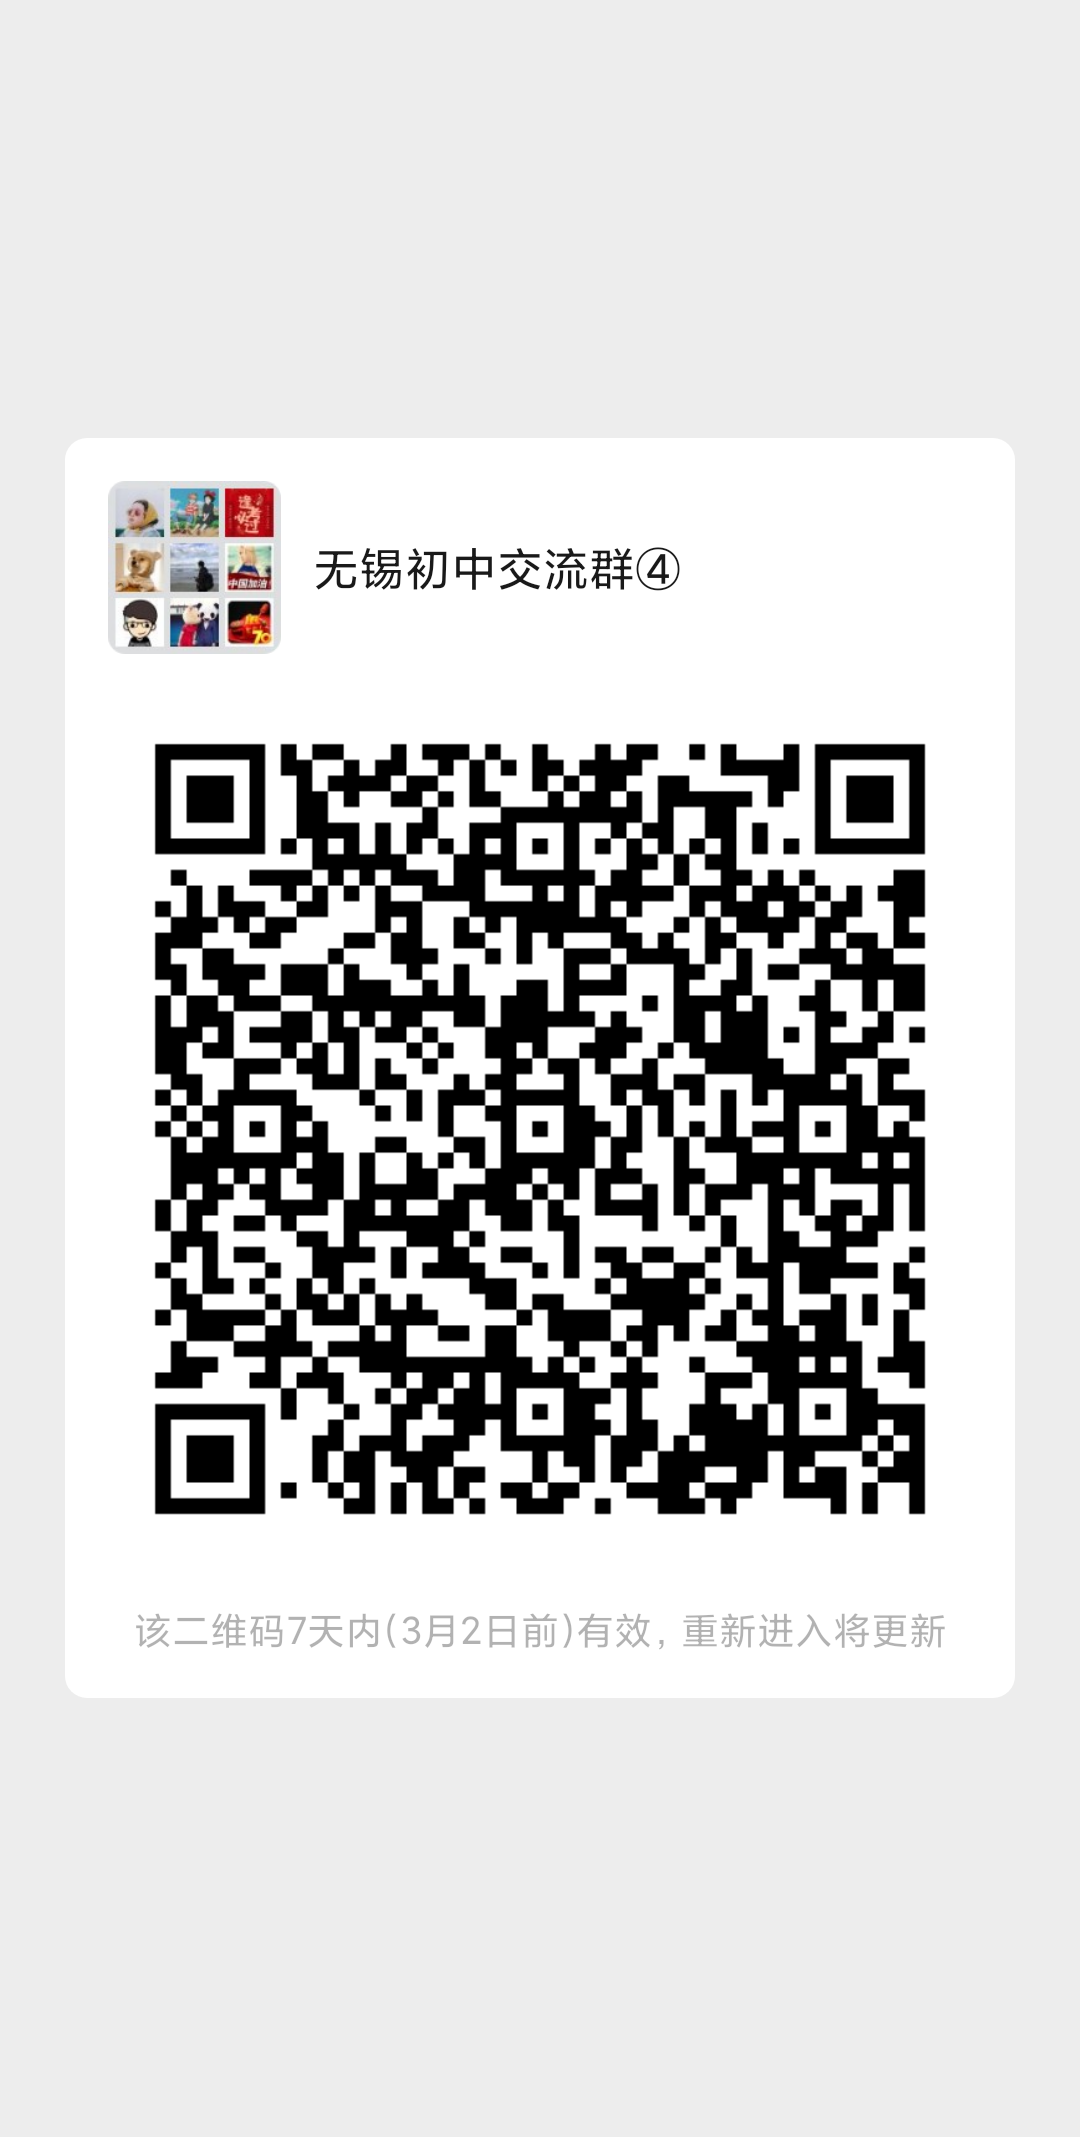 mmqrcode1614047258040.png